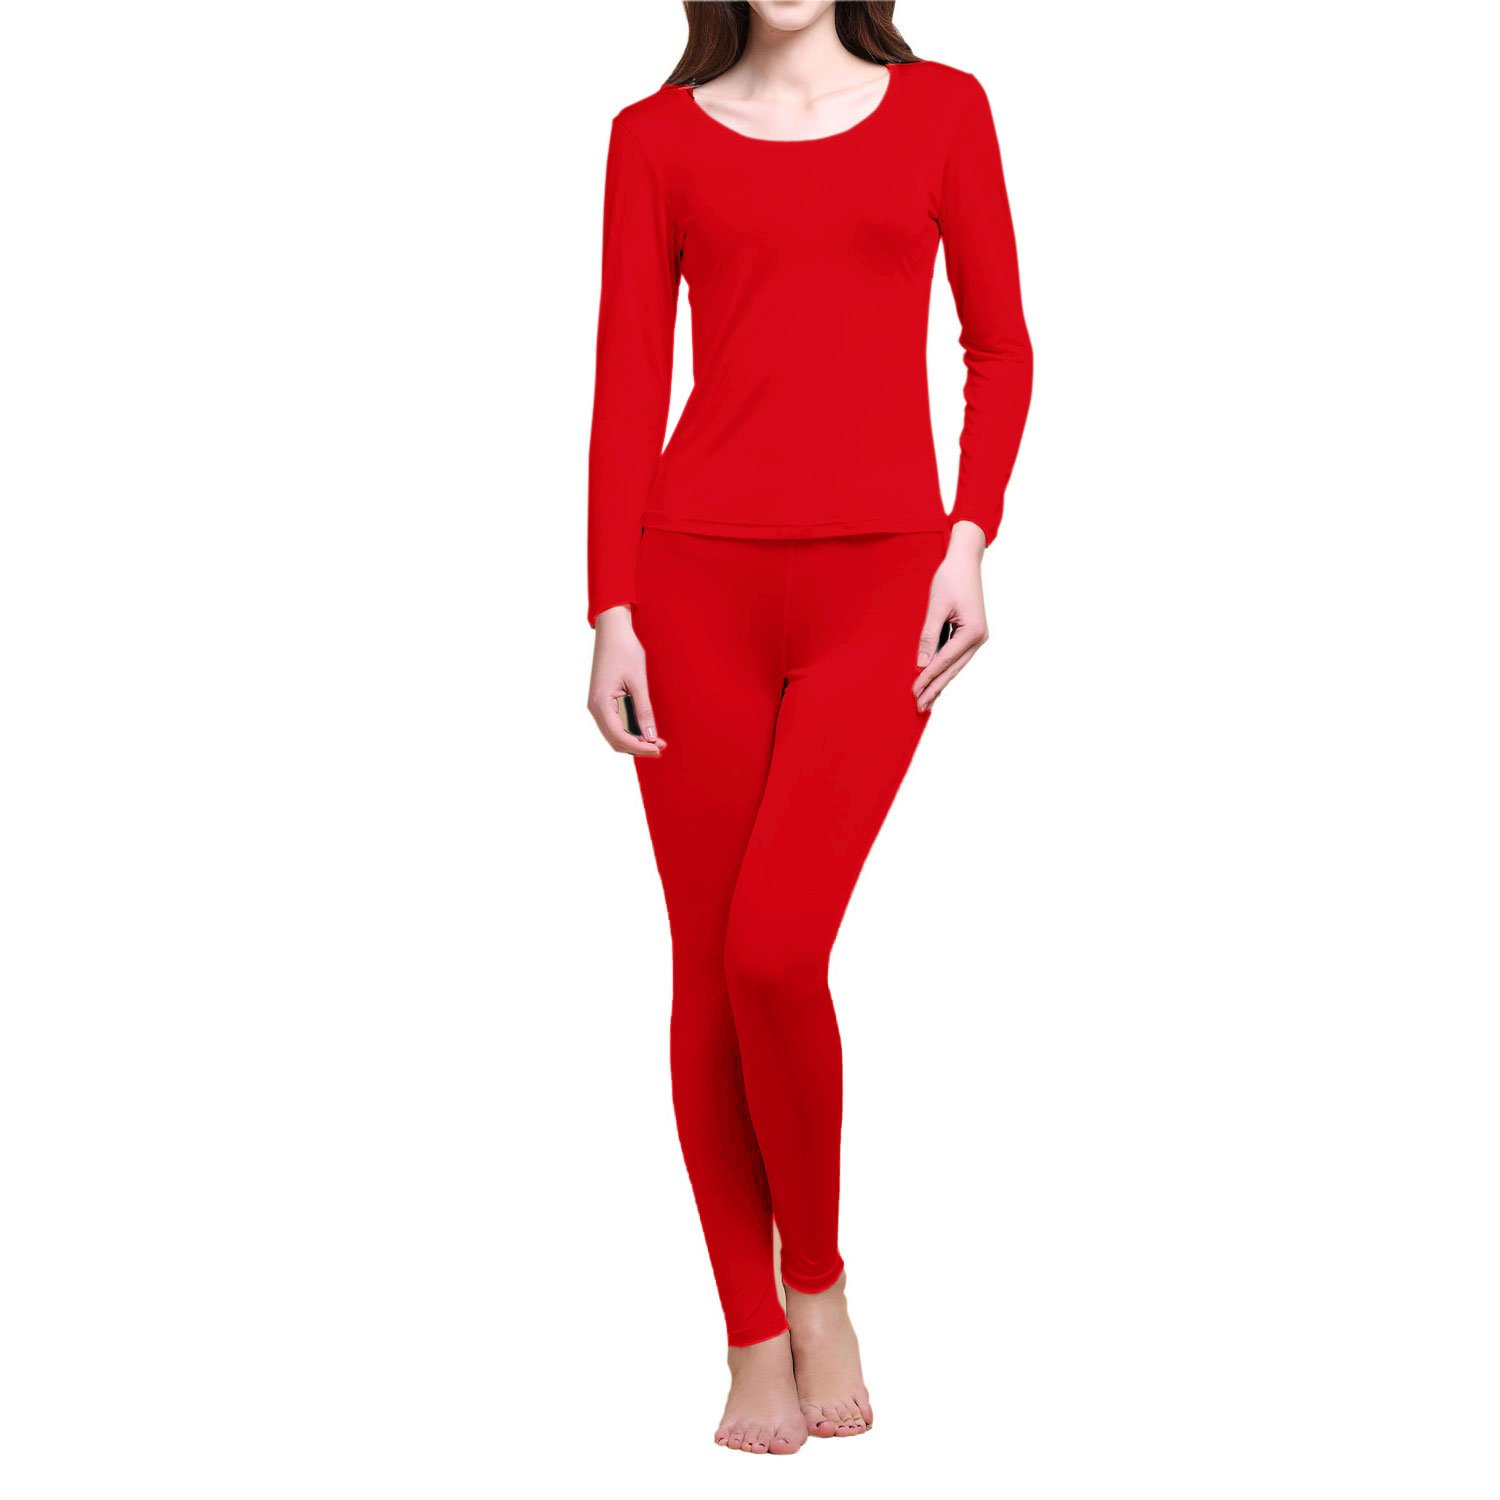 Paradise Silk Pure Silk Knit Women Thermal Long Johns Set SKWLJ150105